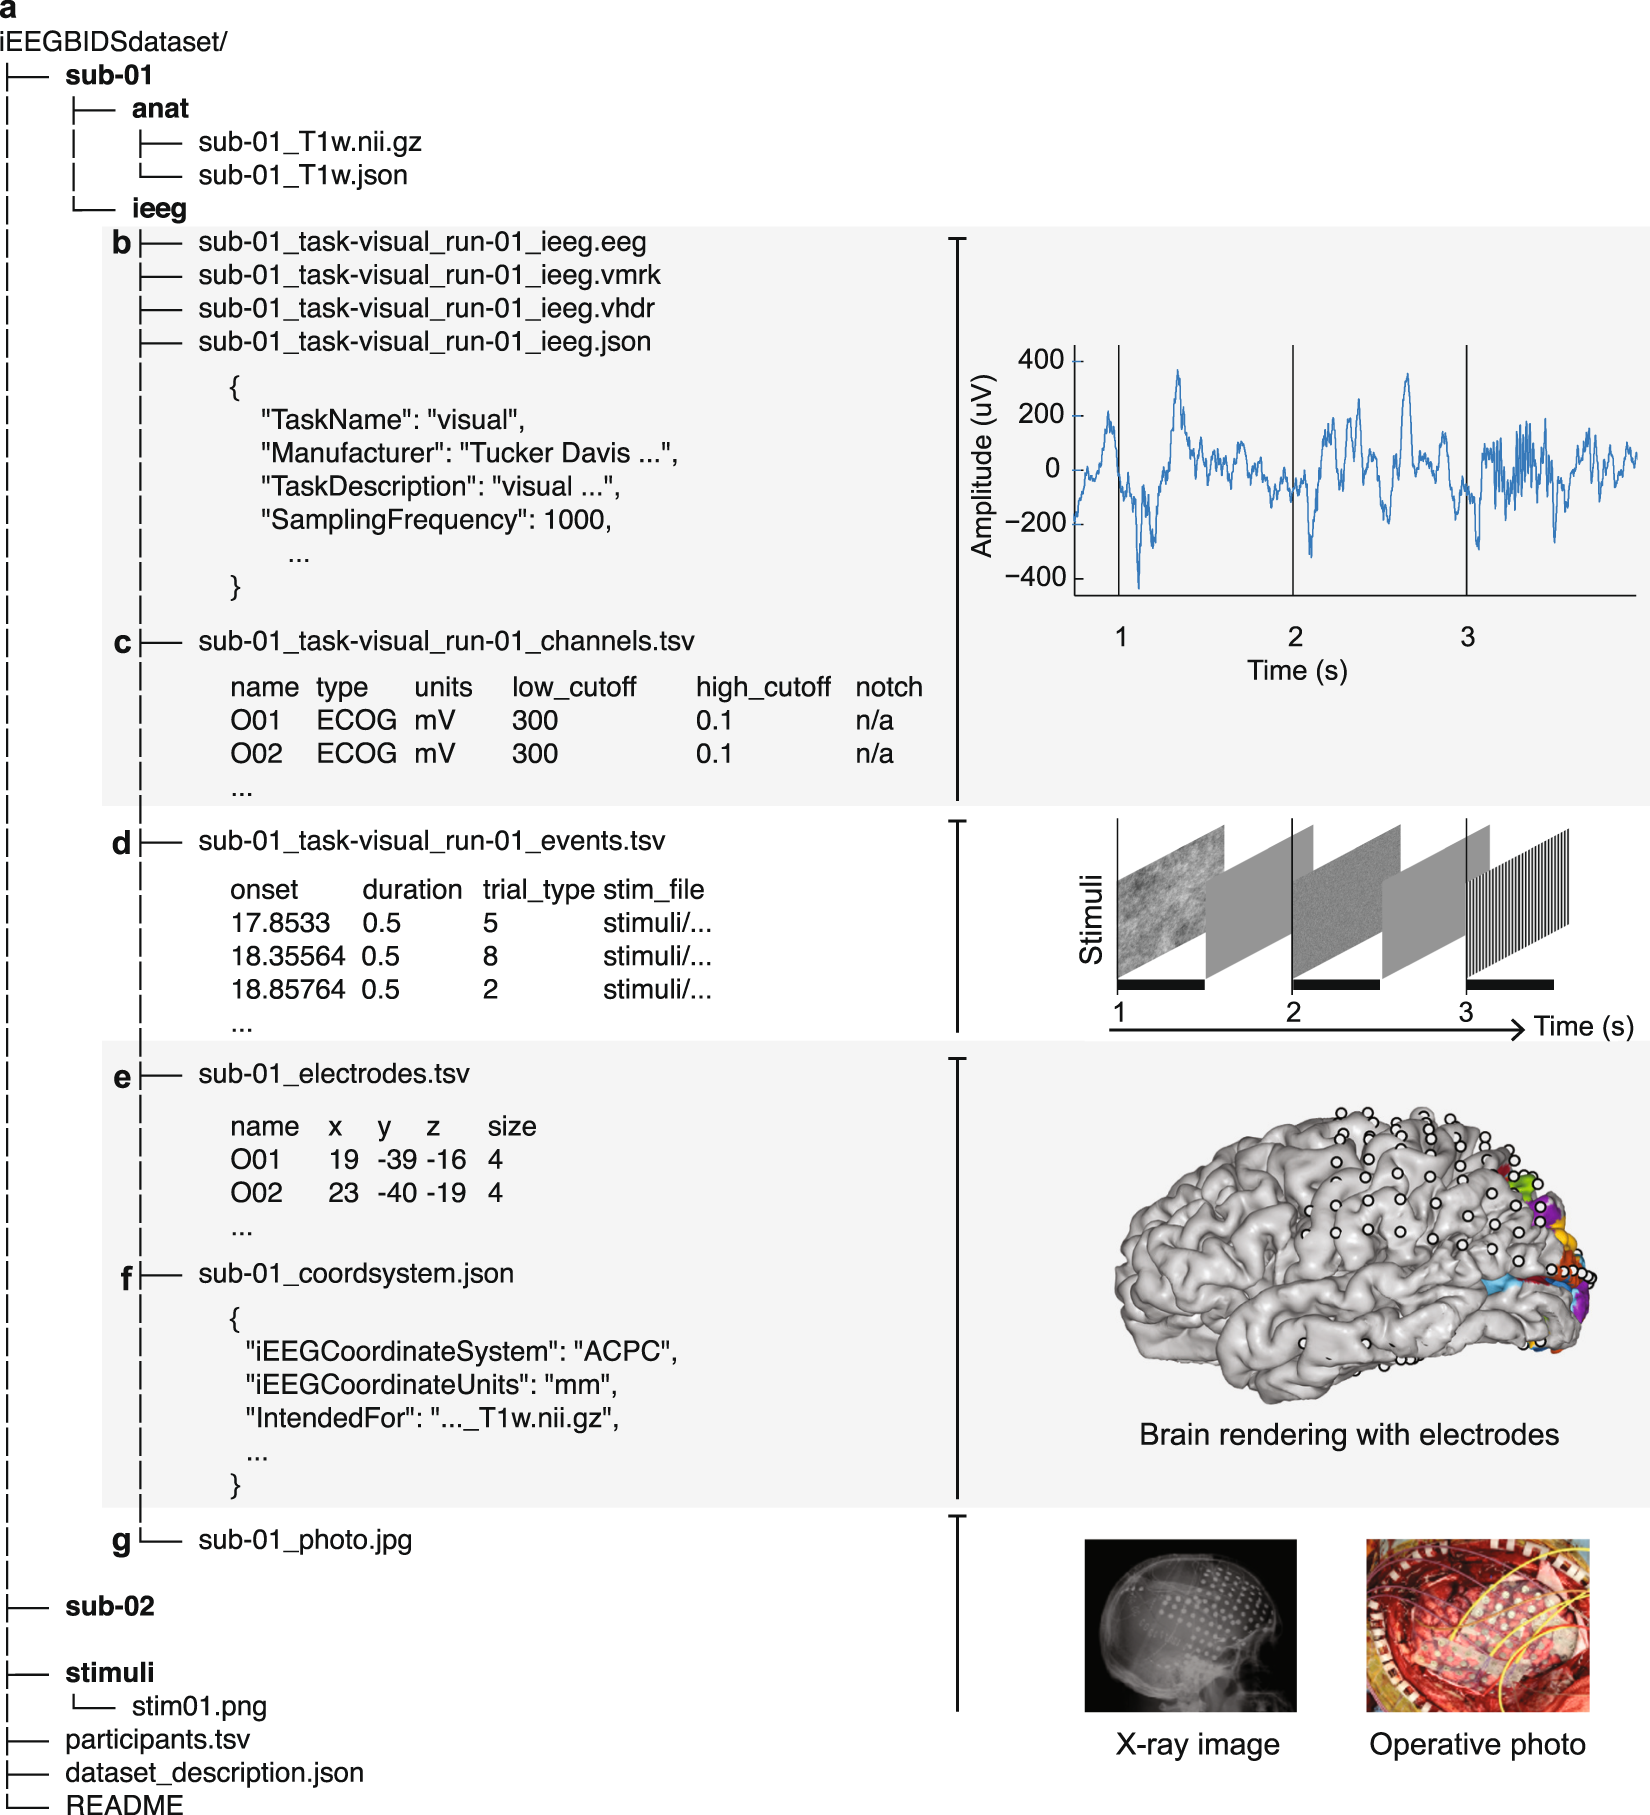 iEEG-BIDS, extending the Brain Imaging Data Structure specification to